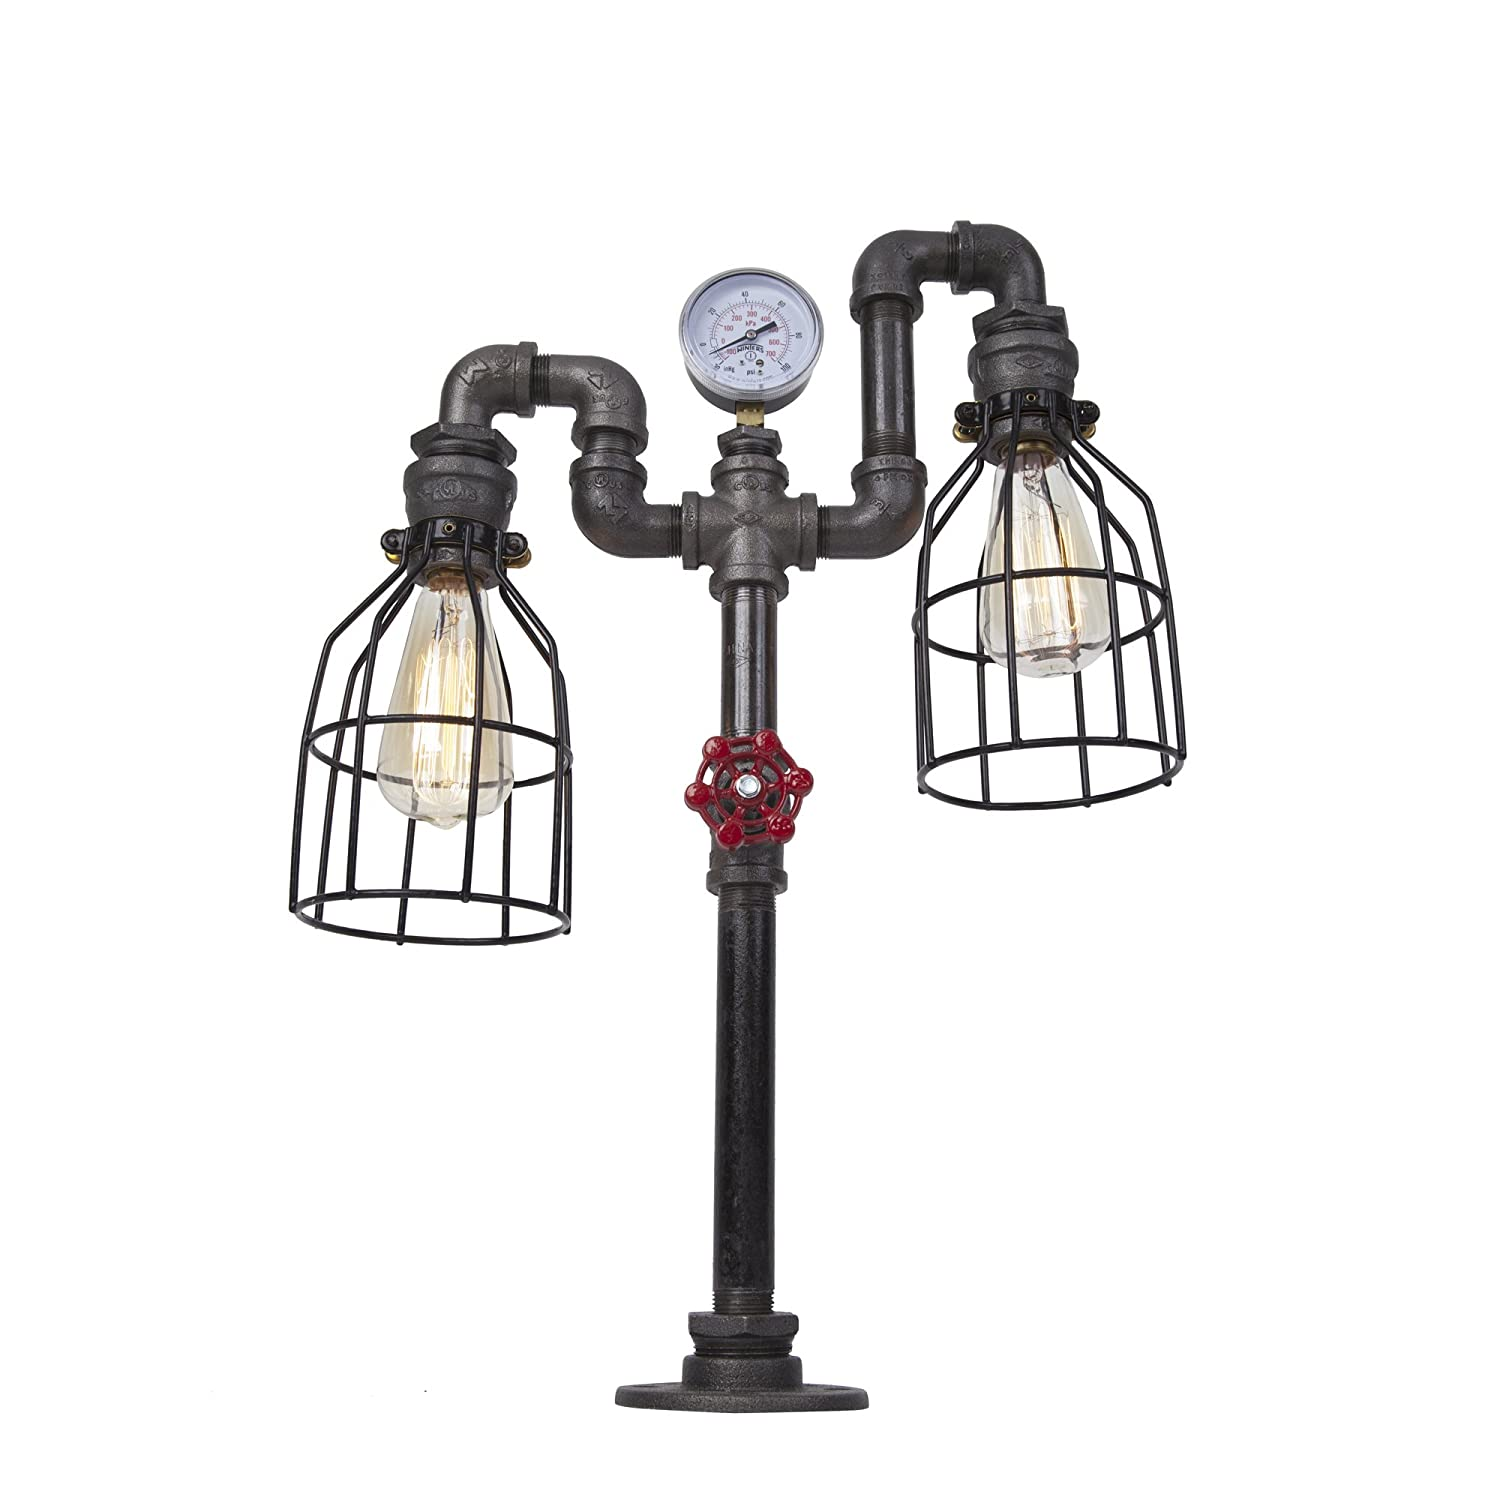 West ninth vintage industrial iron pipe table lamp with cage single cage double pulley amazon com